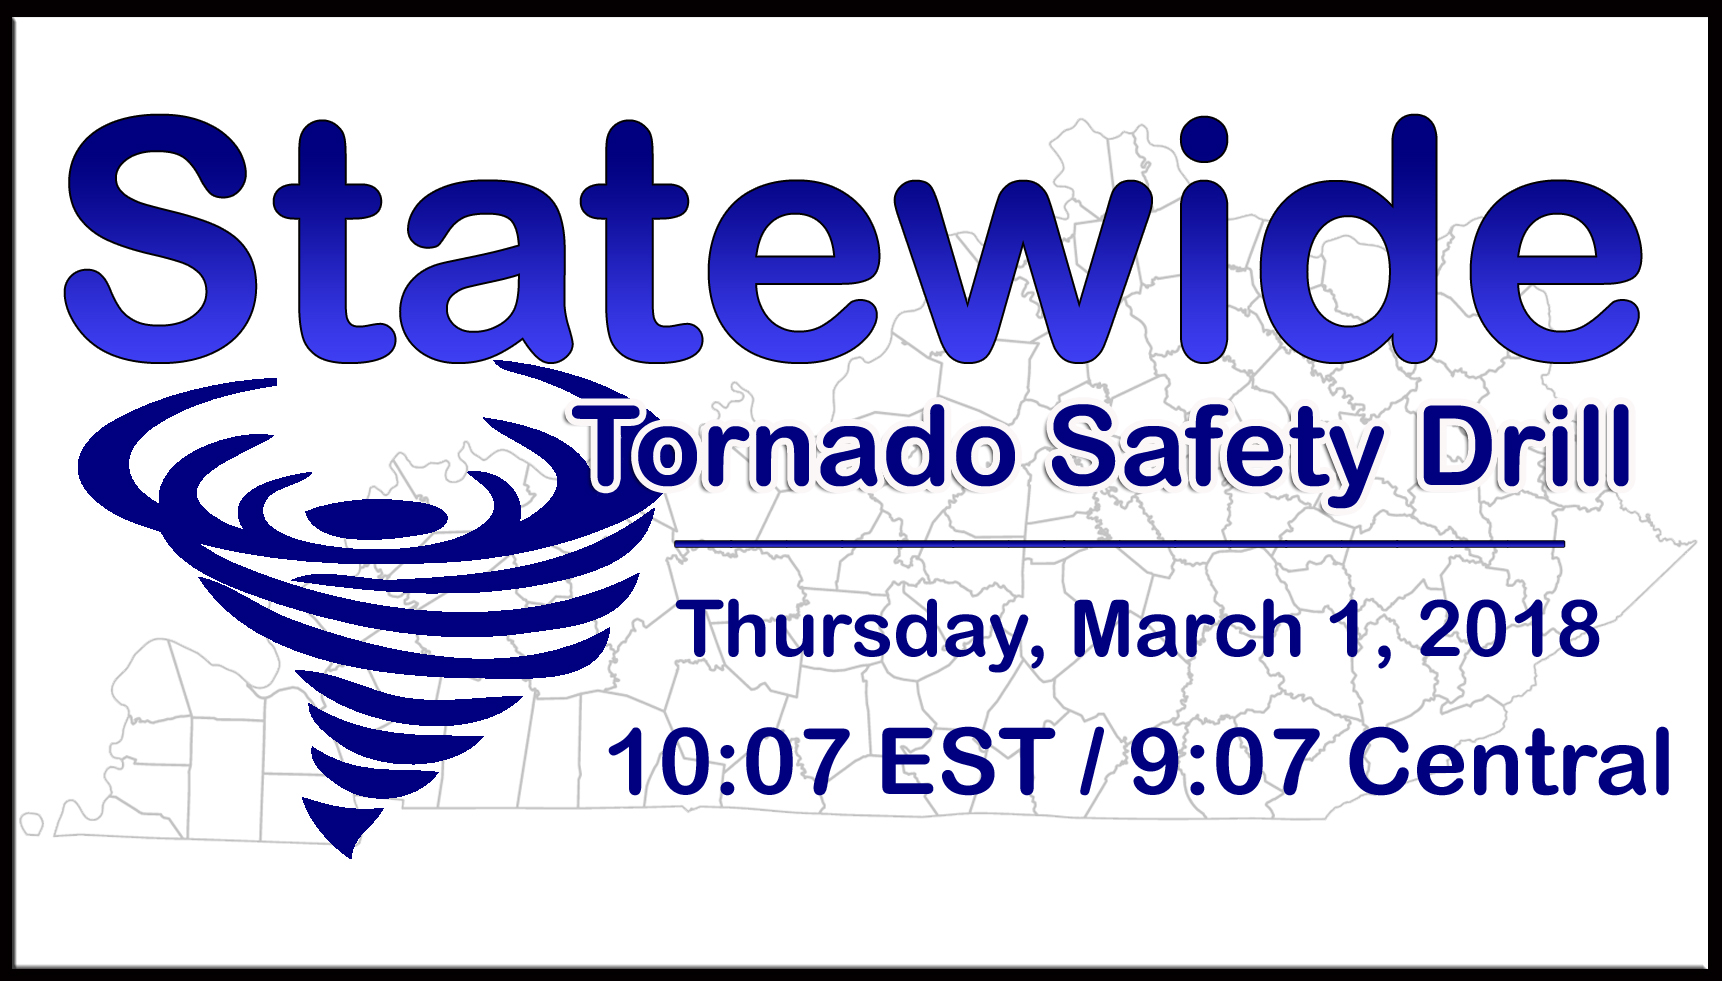 Statewide Tornado Drill on Thursday